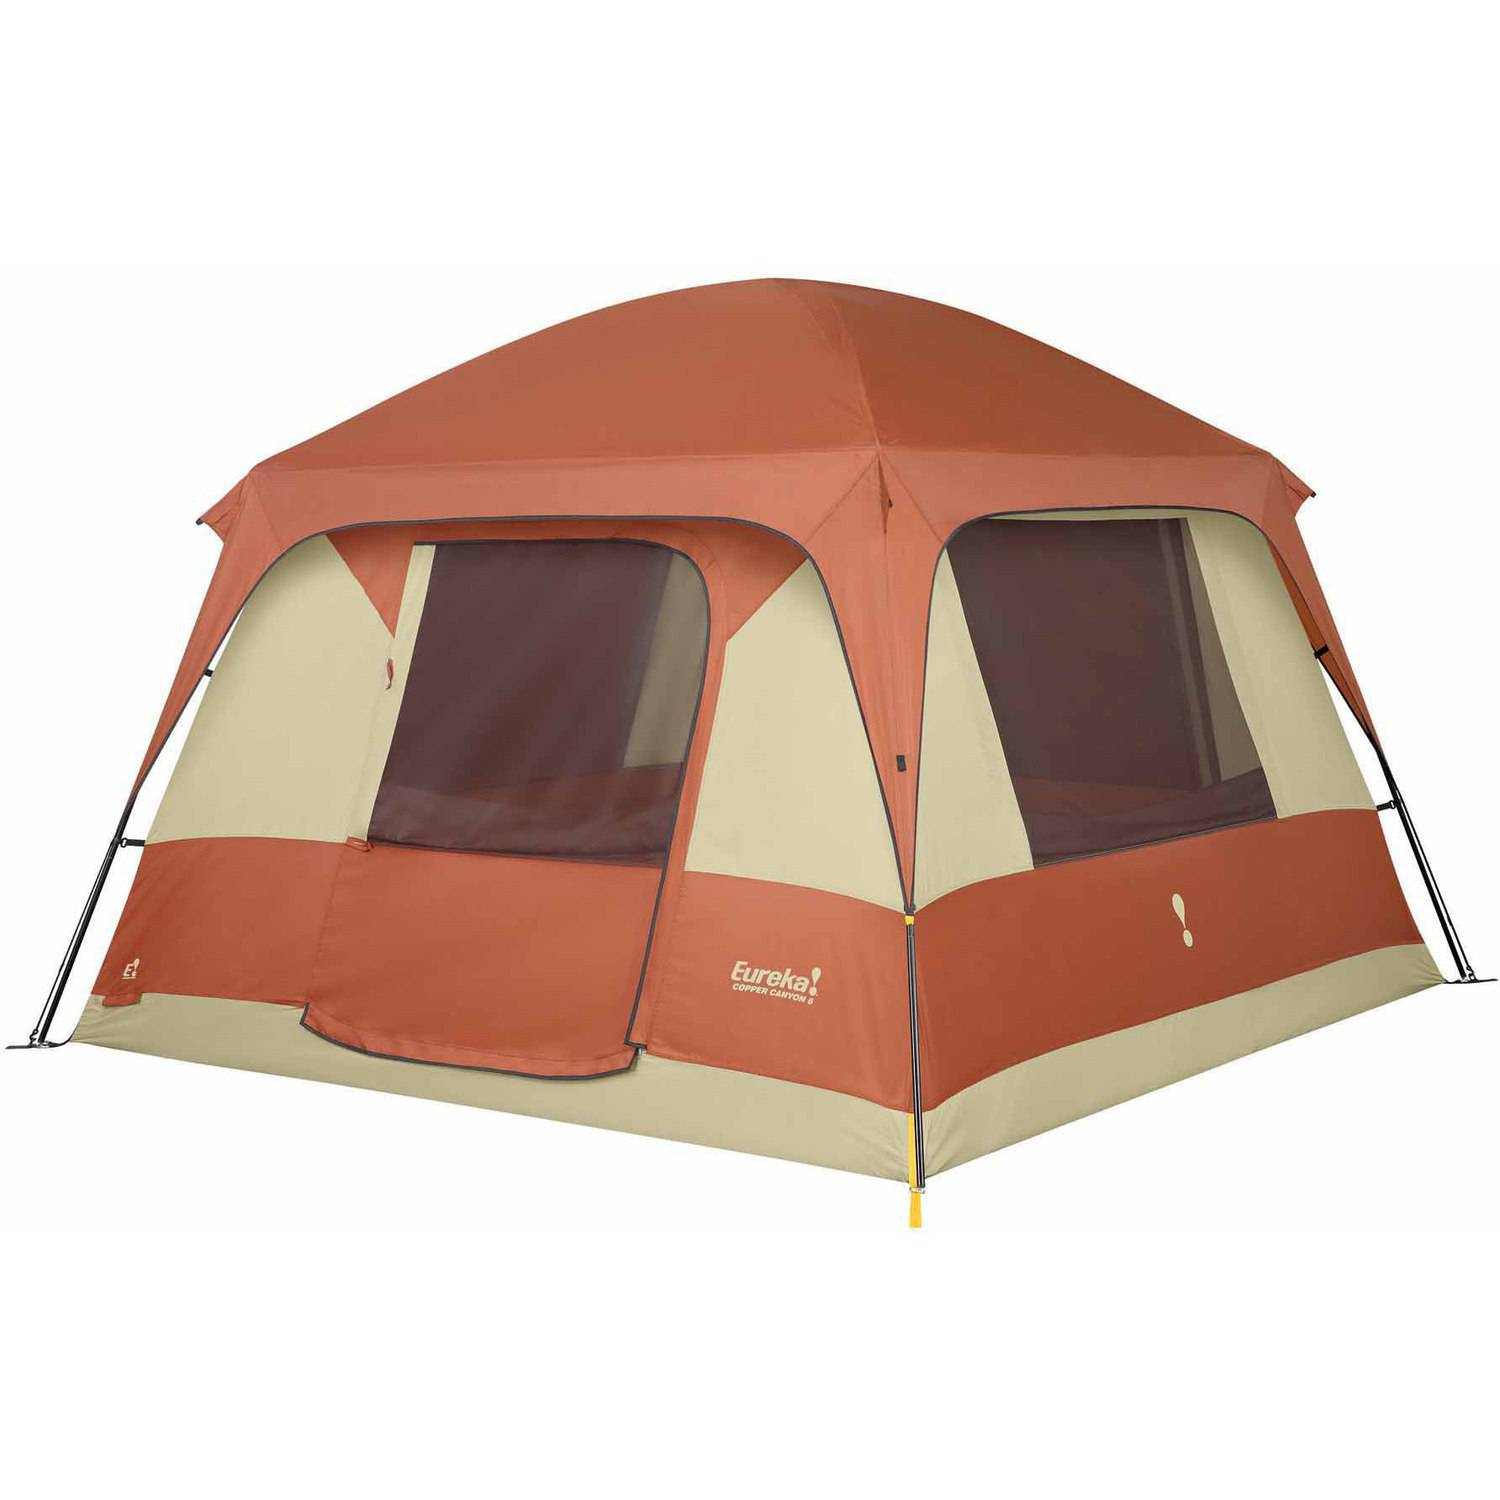 Eureka Copper Canyon 4-Person Tent